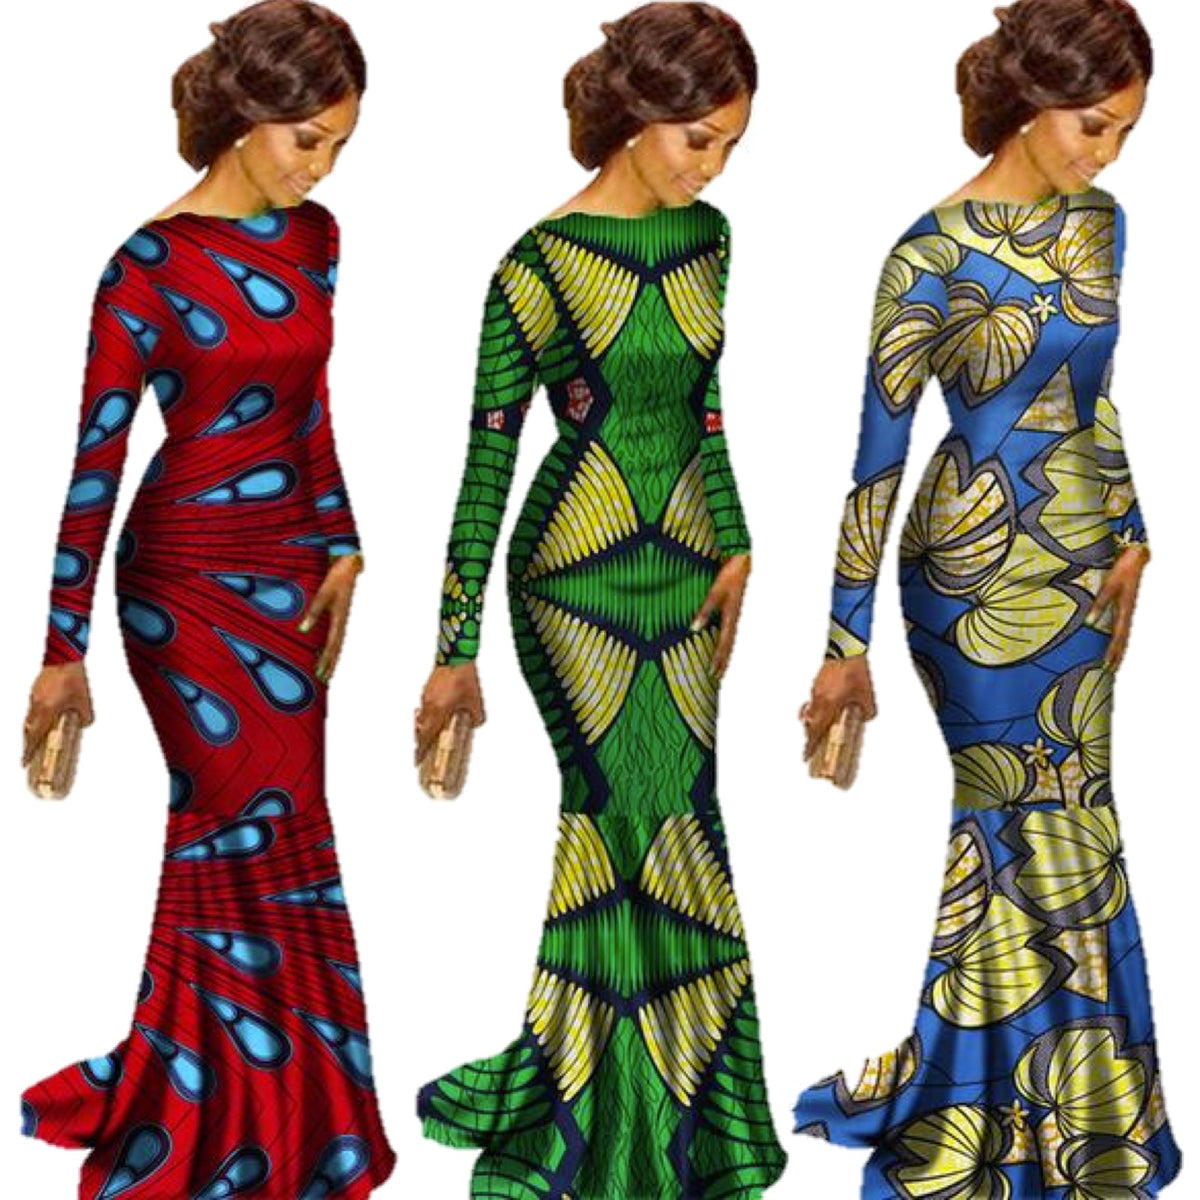 African Print Fashion: African Clothing Ankara Dashiki Kanga Long-Sleeve Dress